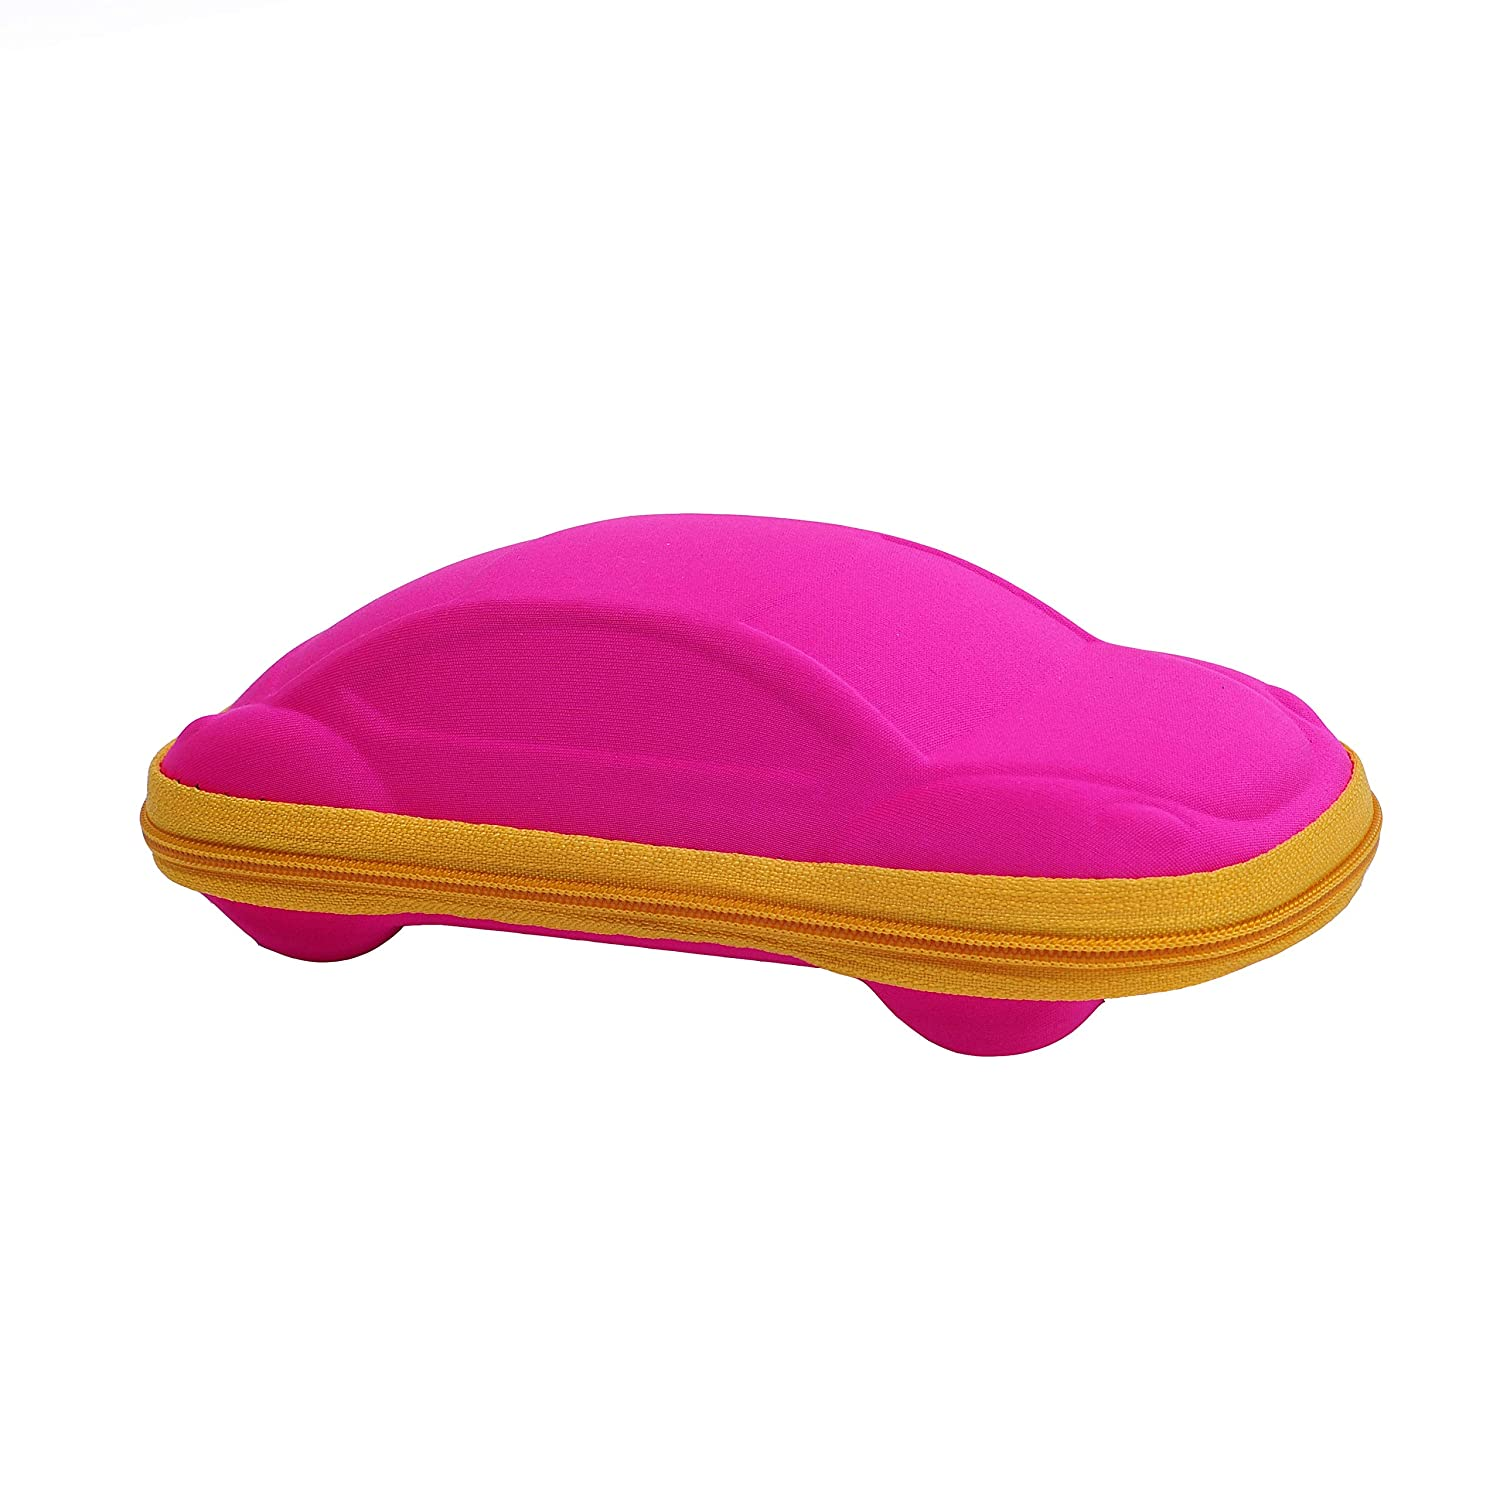 Green Glasses Cleaning Cloth Glasses Case for Kids Boys Girls Sunglass Storage Box Cool Car Shape